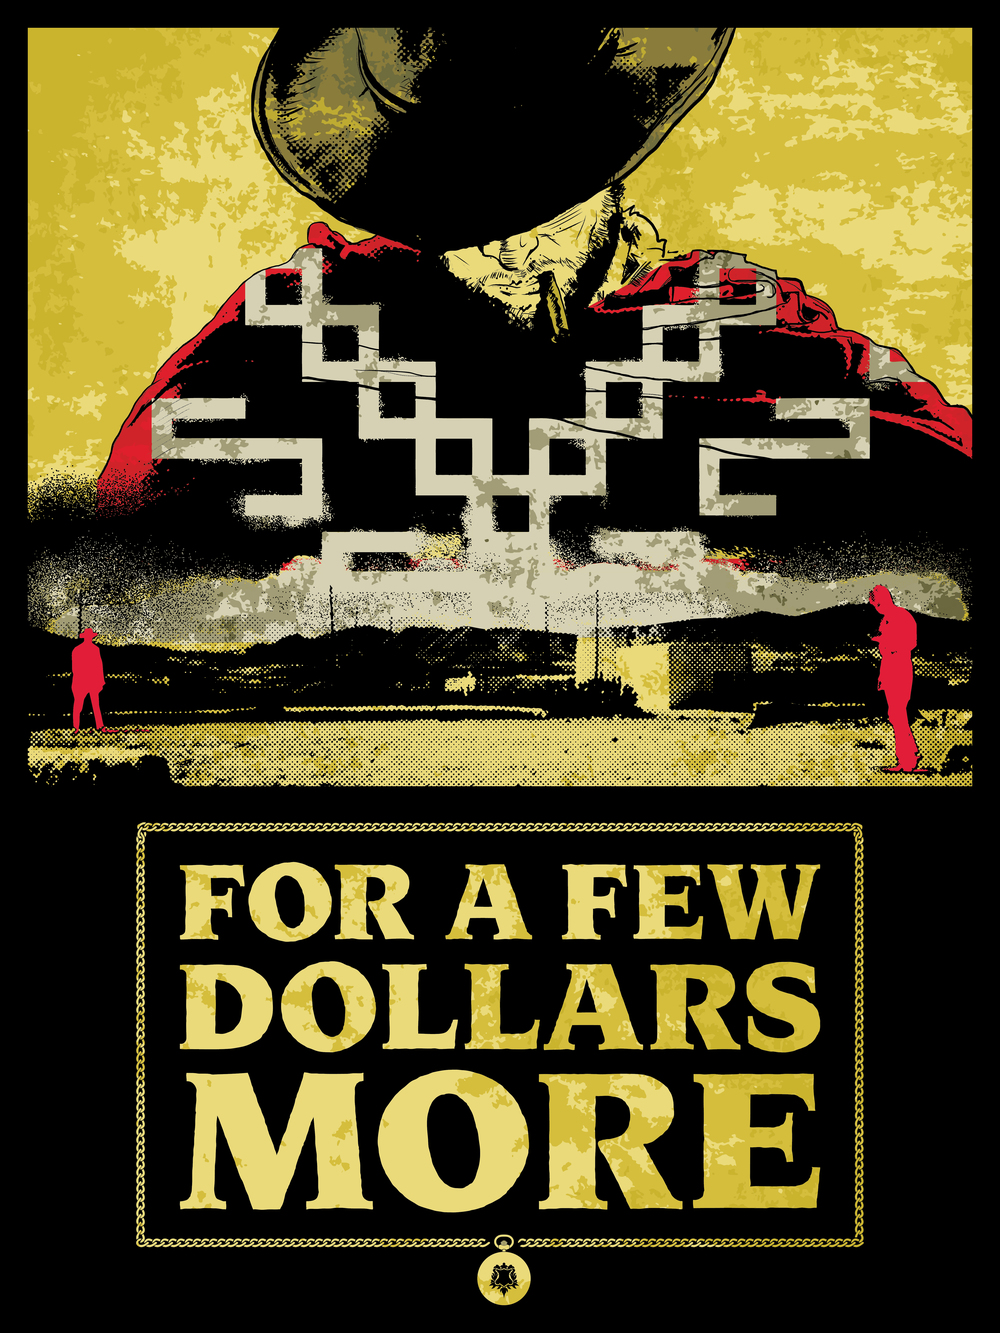 FOR A FEW DOLLARS MORE.jpg